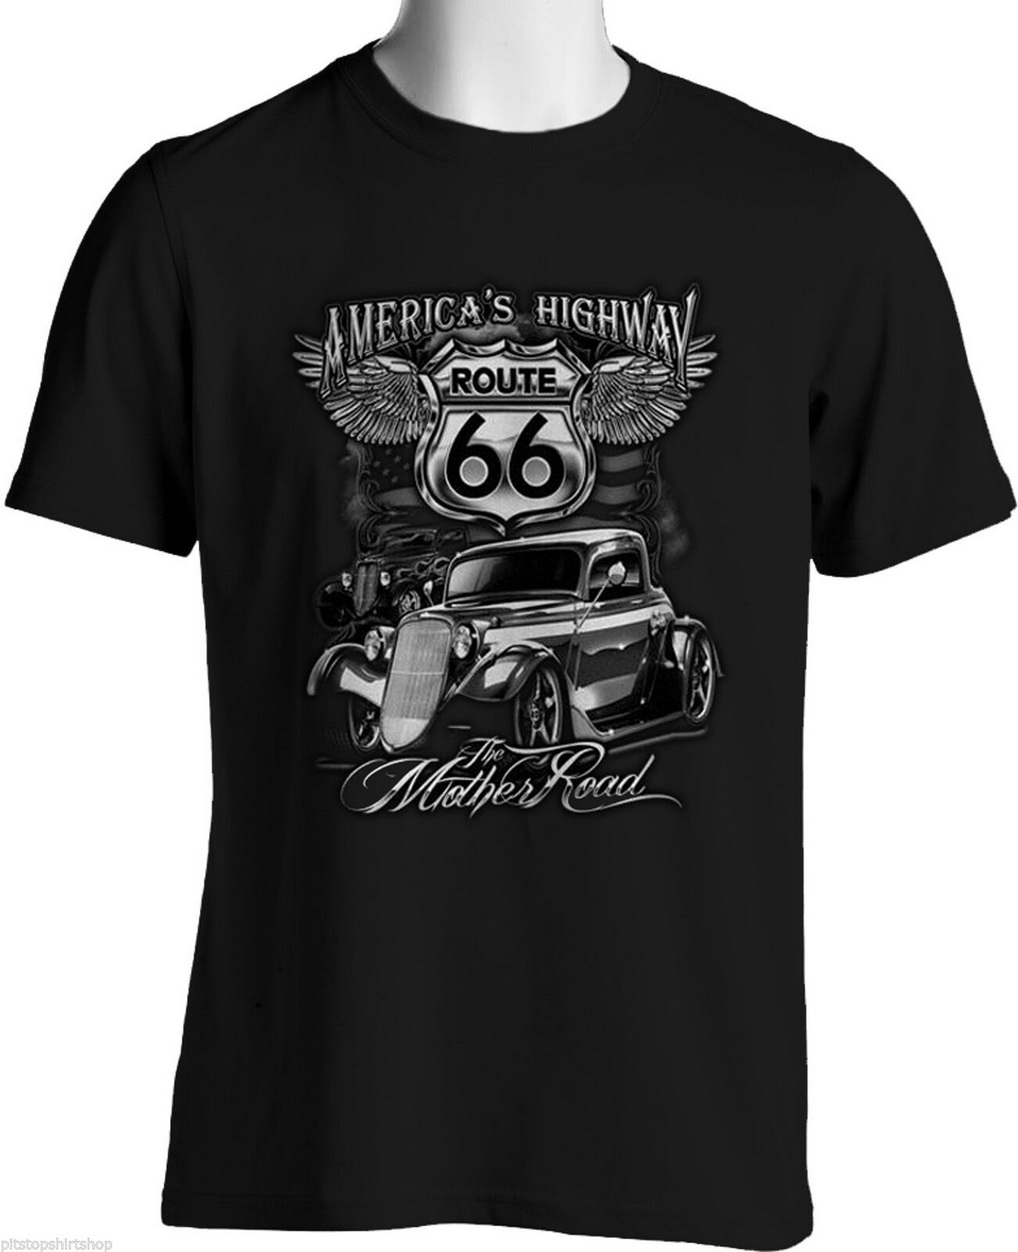 <font><b>Route</b></font> <font><b>66</b></font> <font><b>T</b></font> <font><b>Shirts</b></font> Rat Rod Mother Road Hot Rods Souvenir Mens Small To 6XL & Tall Printing Men Tops TEE <font><b>Shirt</b></font> image